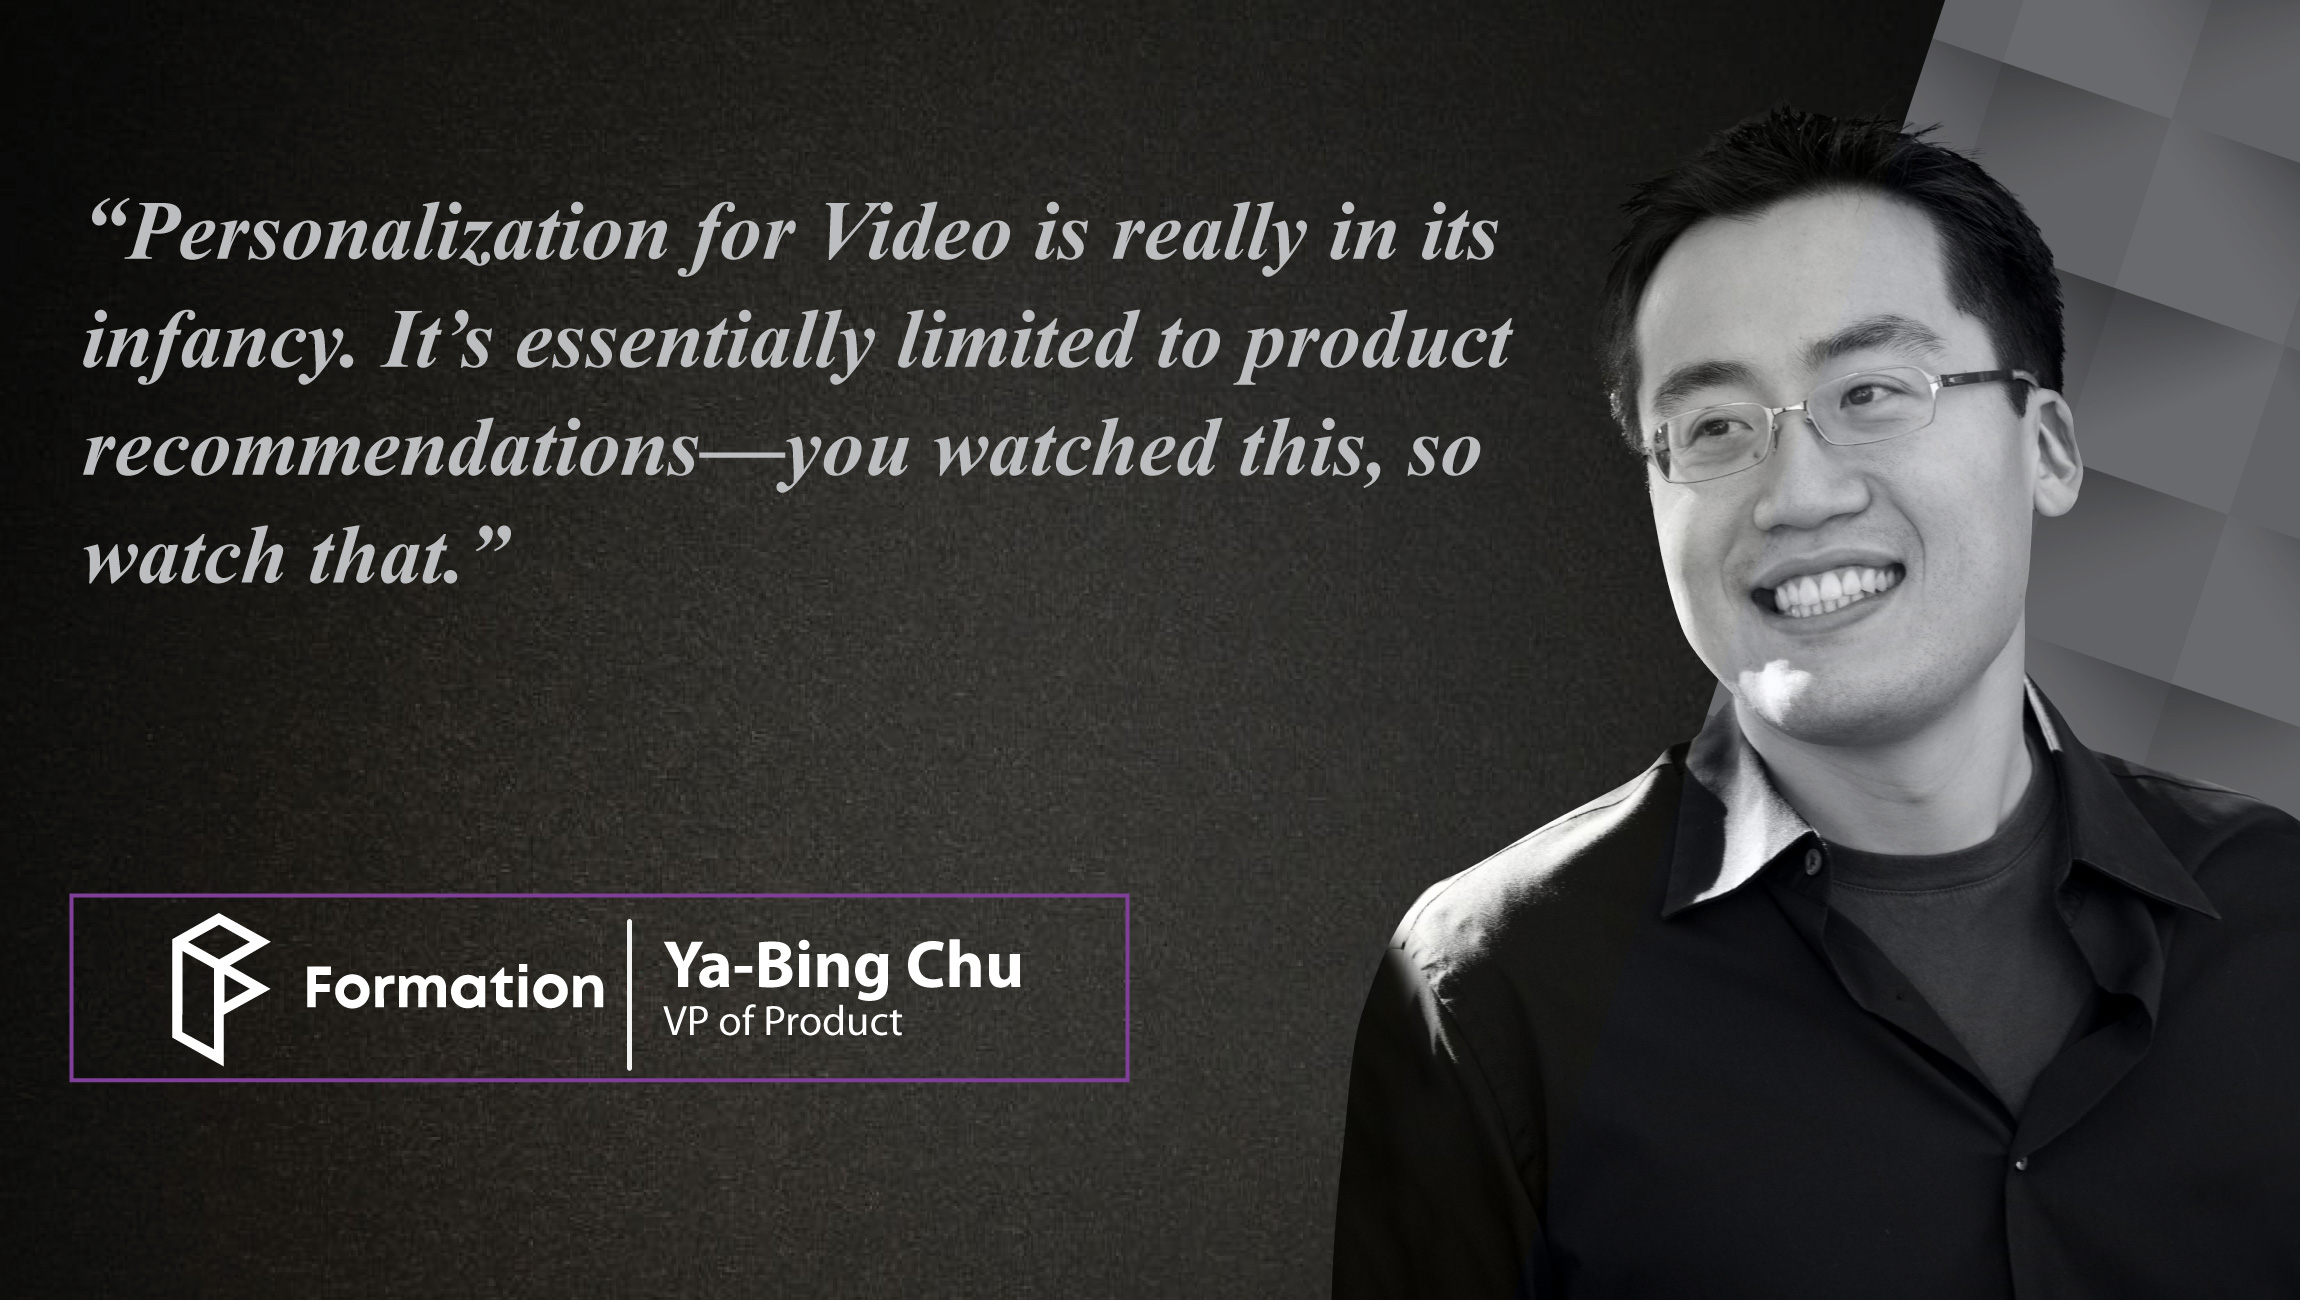 AiThority Interview with Ya-Bing Chu, VP of Product at Formation